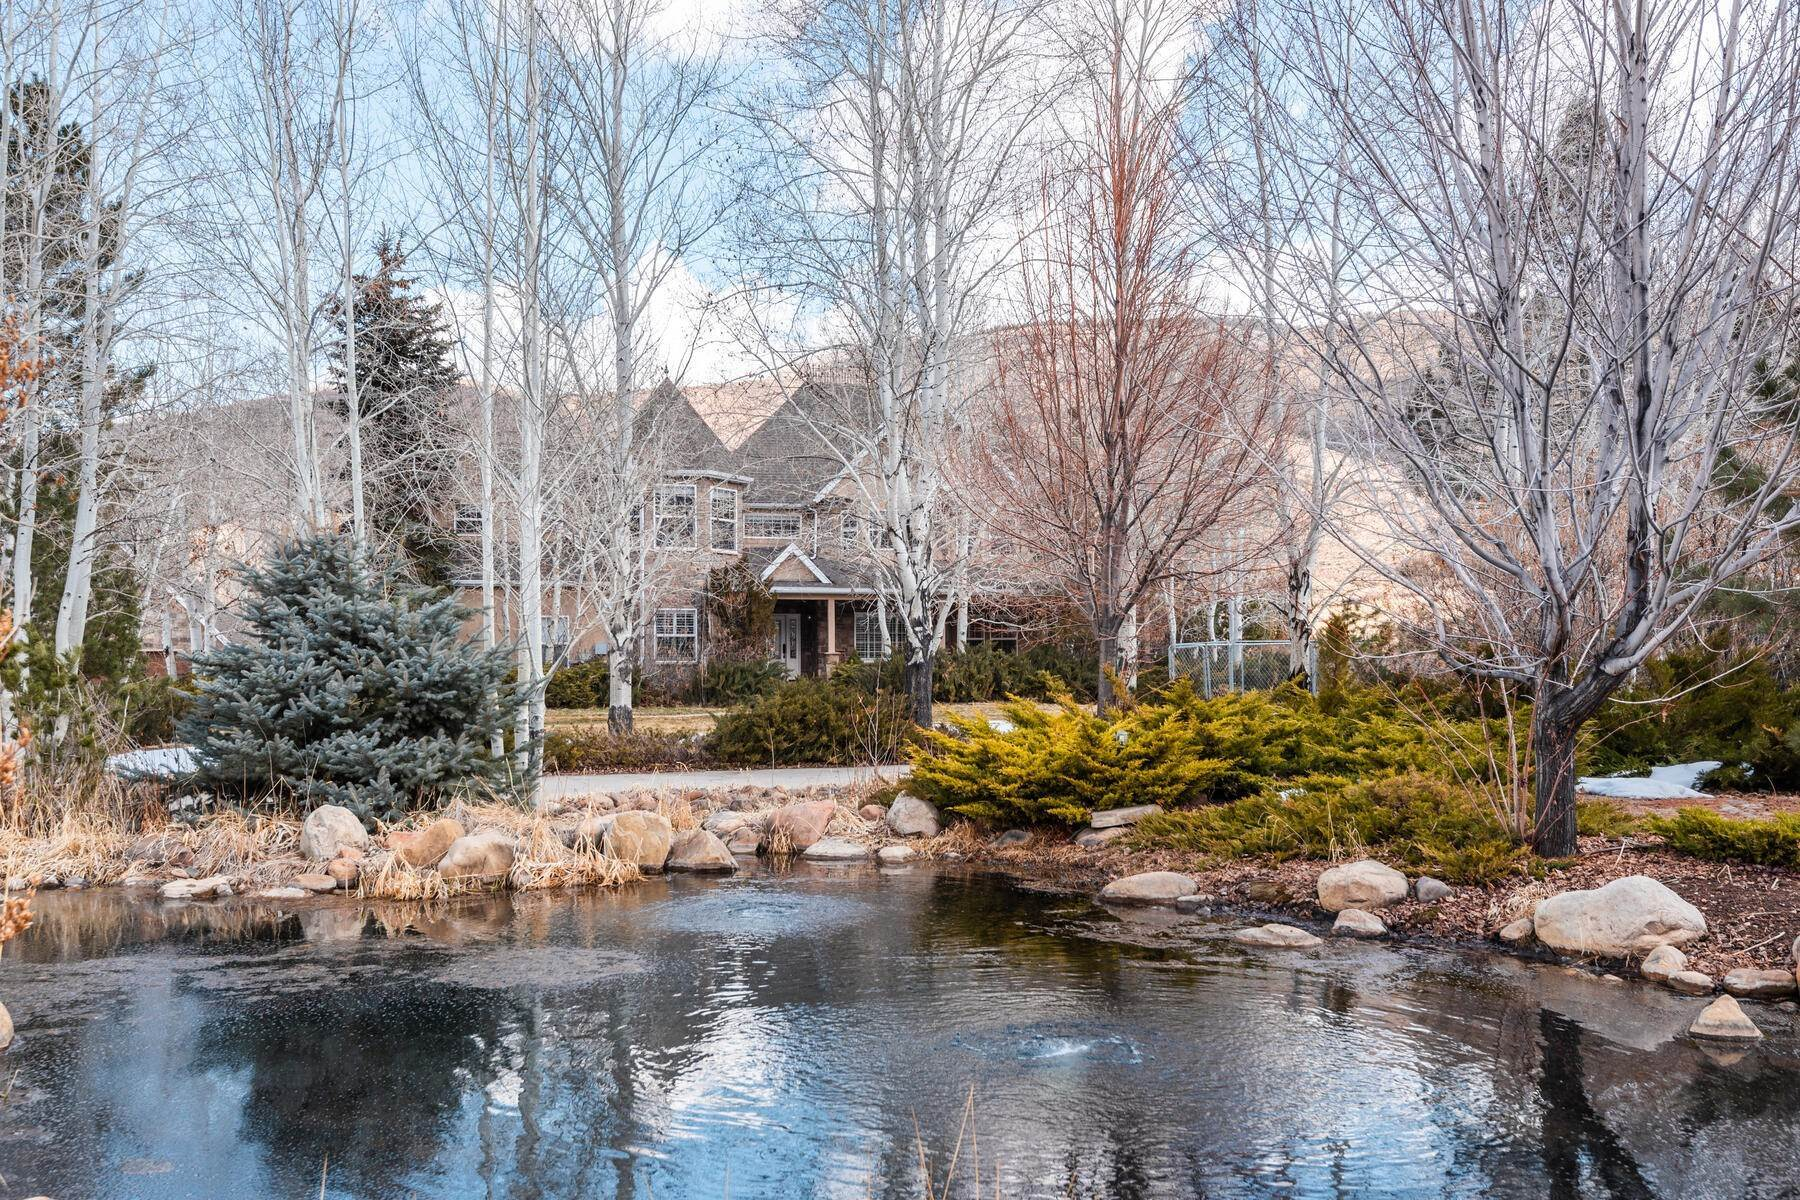 Single Family Homes for Sale at 3.39 Acre Gated Equestrian Estate in the Kamas Valley- 20 Minutes from Park City 595 E Gristmill Lane Kamas, Utah 84036 United States